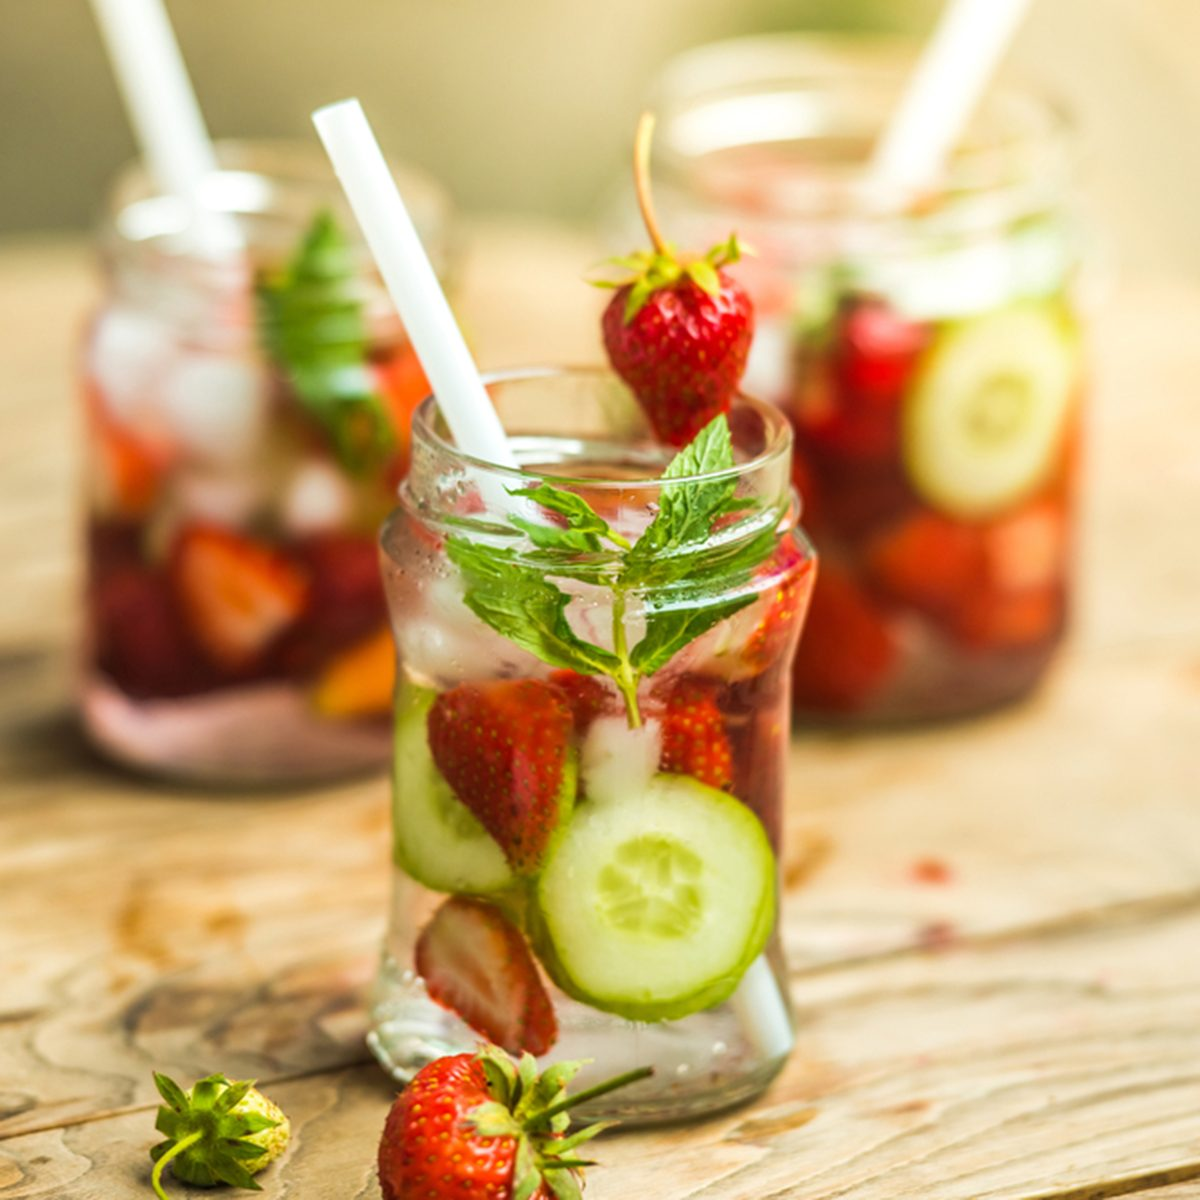 Three retro glass jars of lemonade with strawberries, cucumber and mint on wooden table